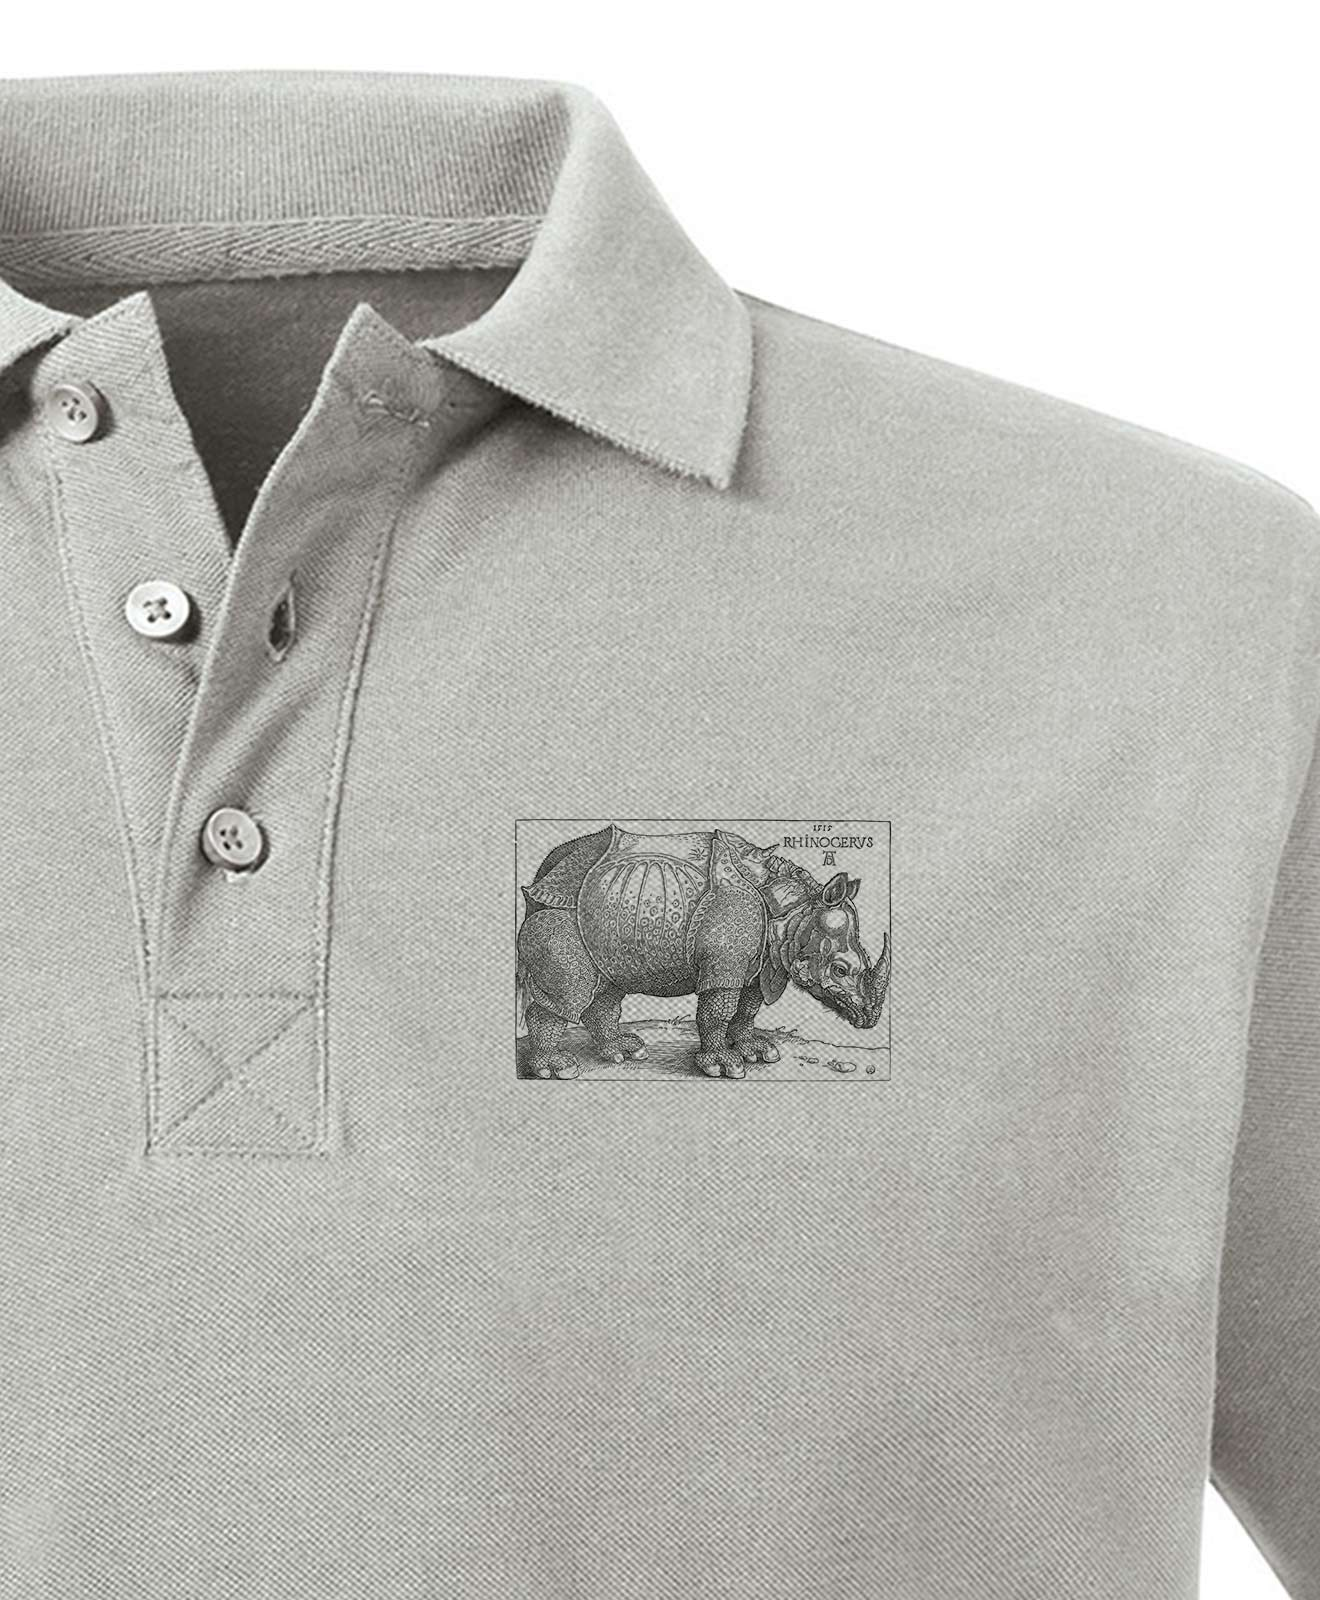 Rhinocerus Organic Polo Shirt color light grey, printing detail